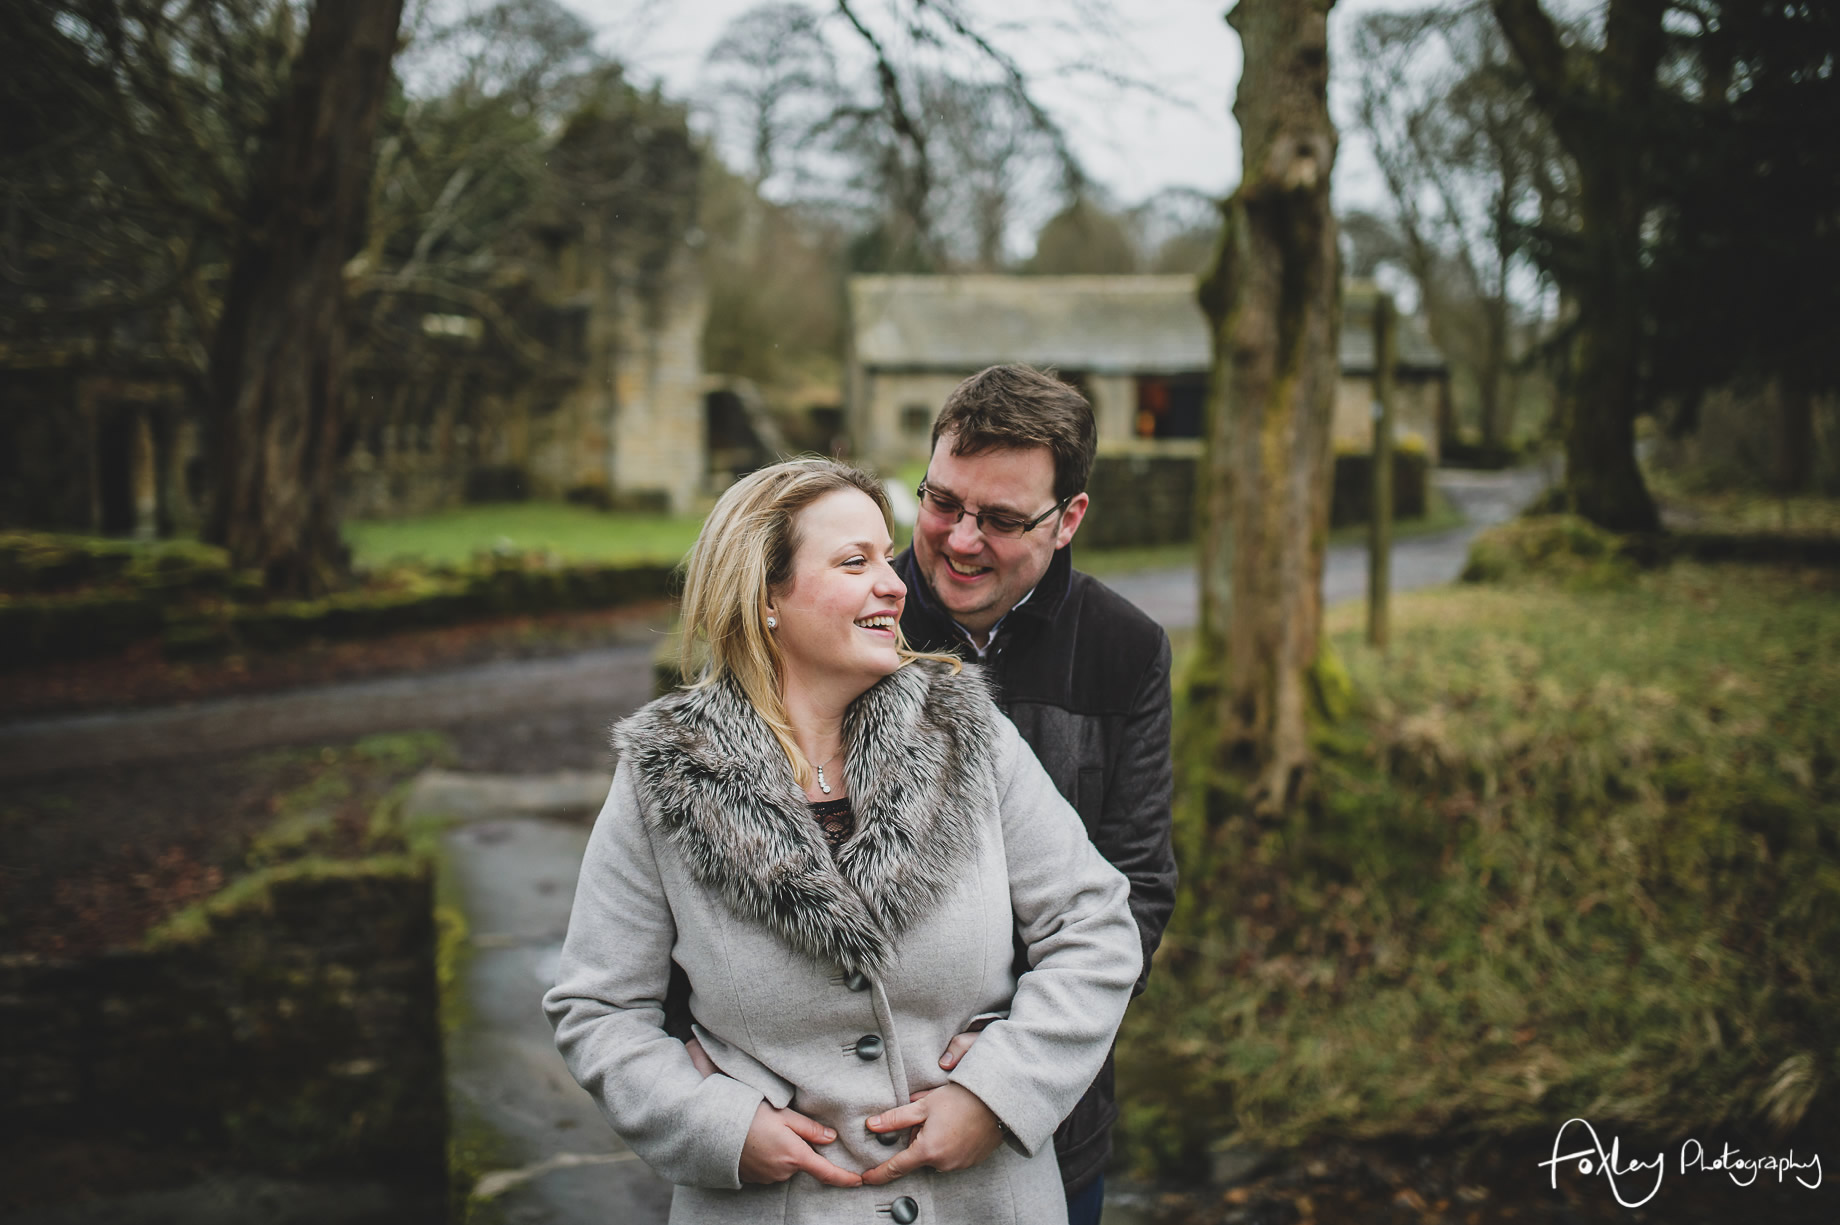 Rebecca and Paul's Pre-Wedding Shoot at Wycoller Country Park 019